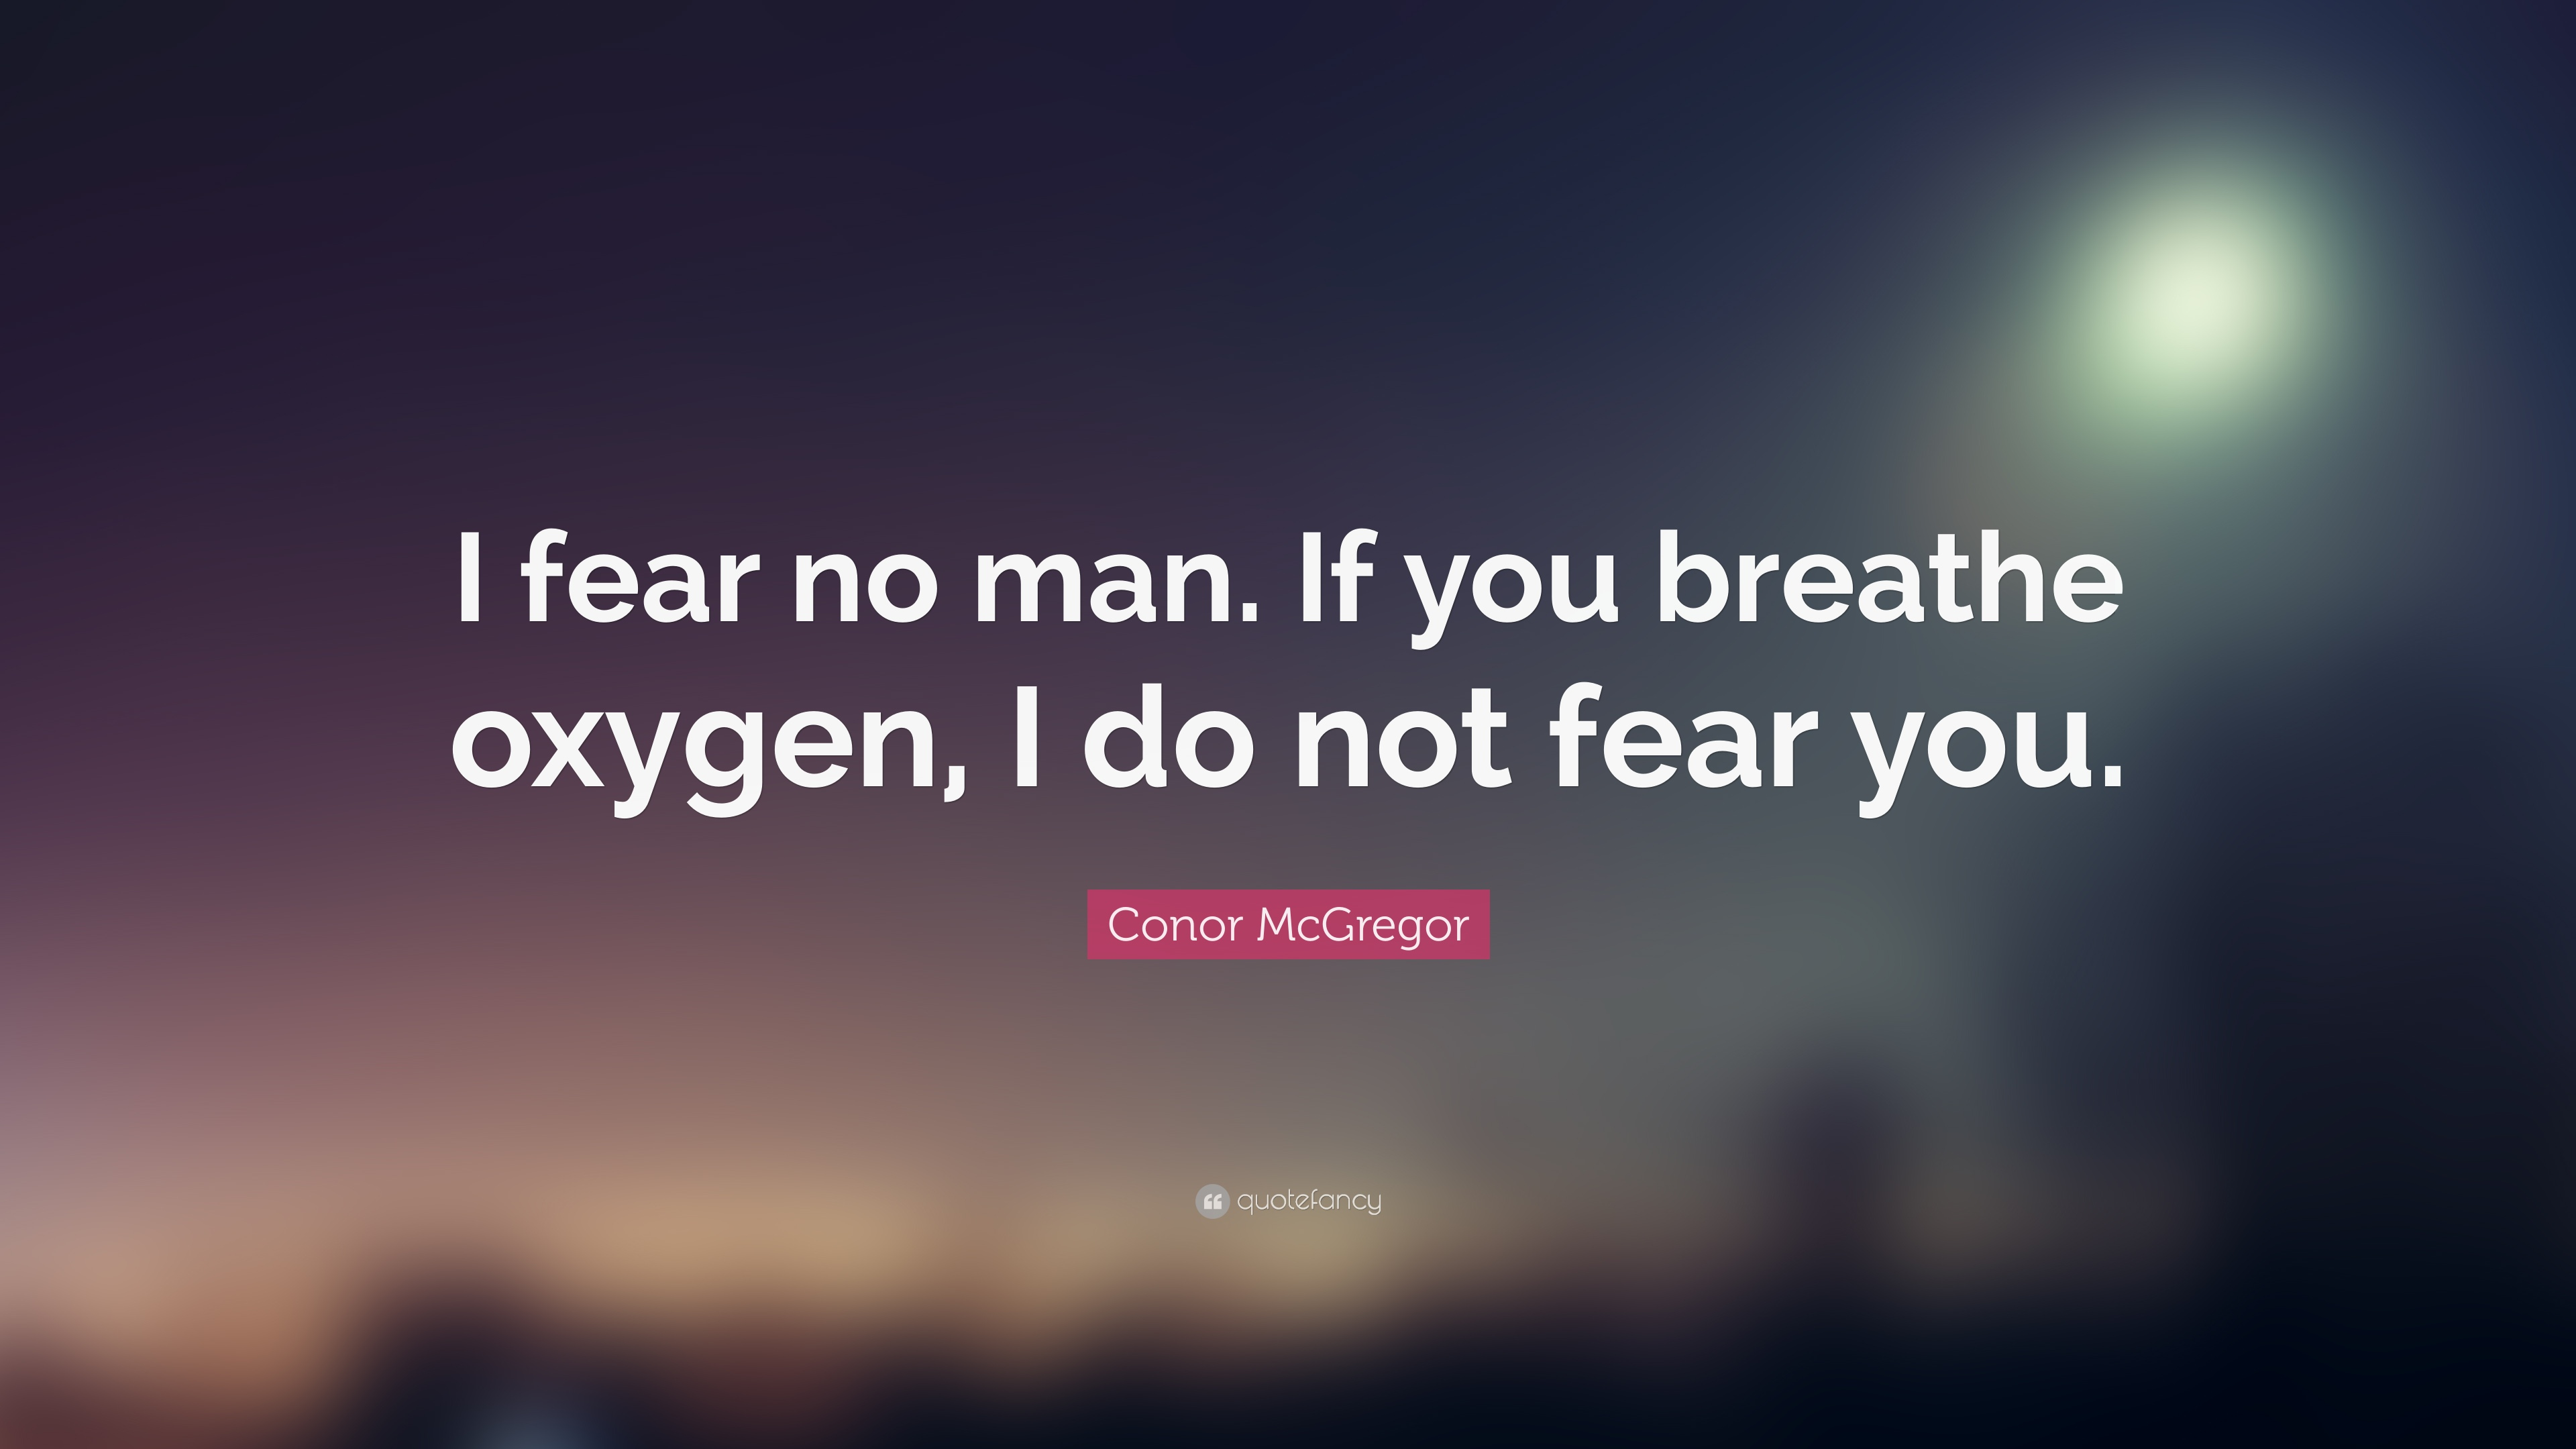 Conor Mcgregor Quote I Fear No Man If You Breathe Oxygen I Do